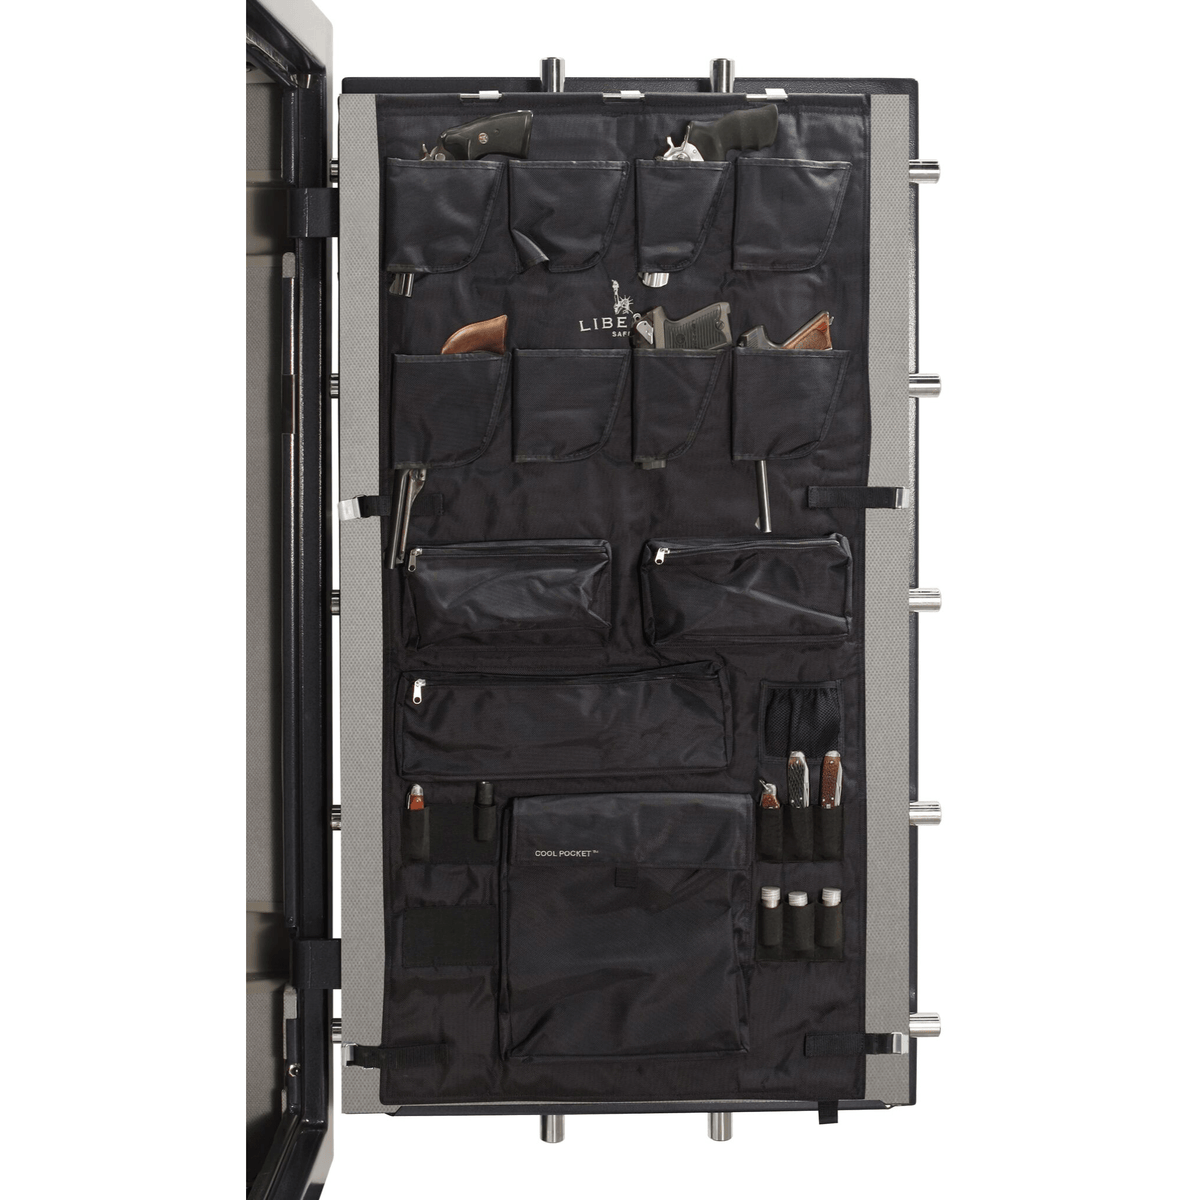 Accessory - Storage - Door Panel - 35-40 size safes